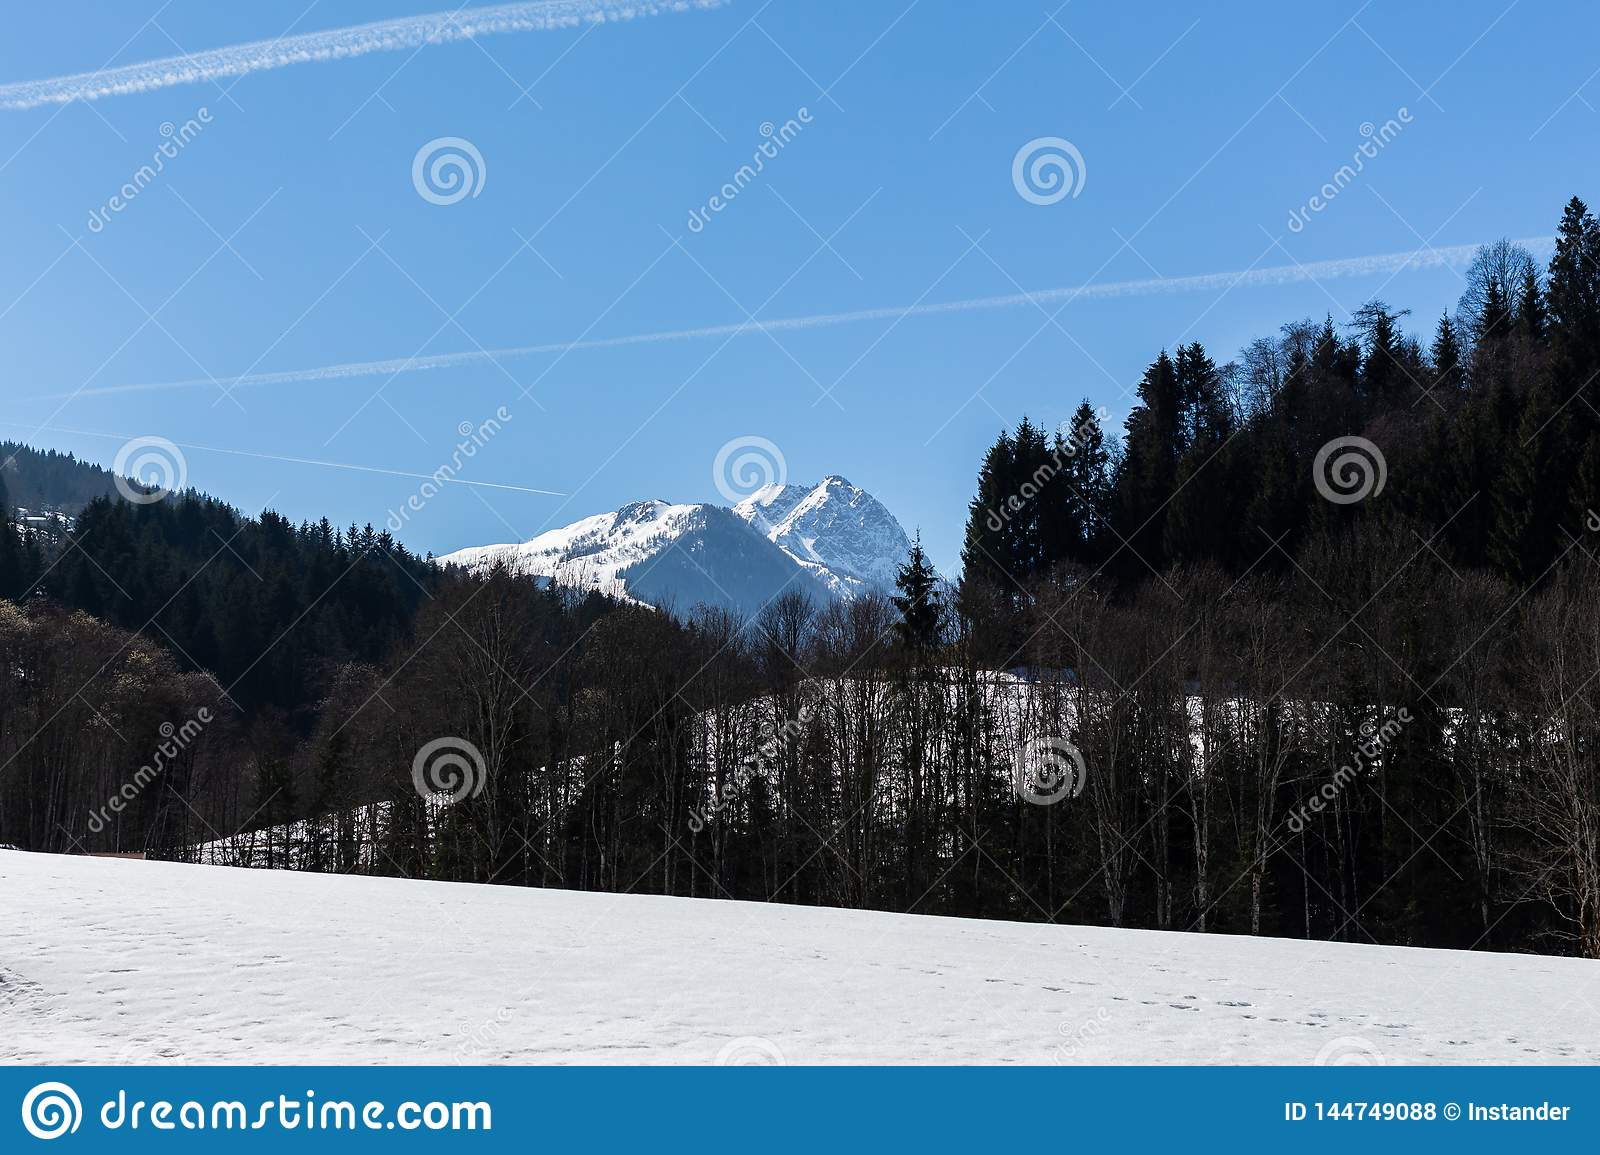 Kirchberg in Tirol, Tirol/Austria - March 24 2019: View on a distant mountain top in the Austrian Alps